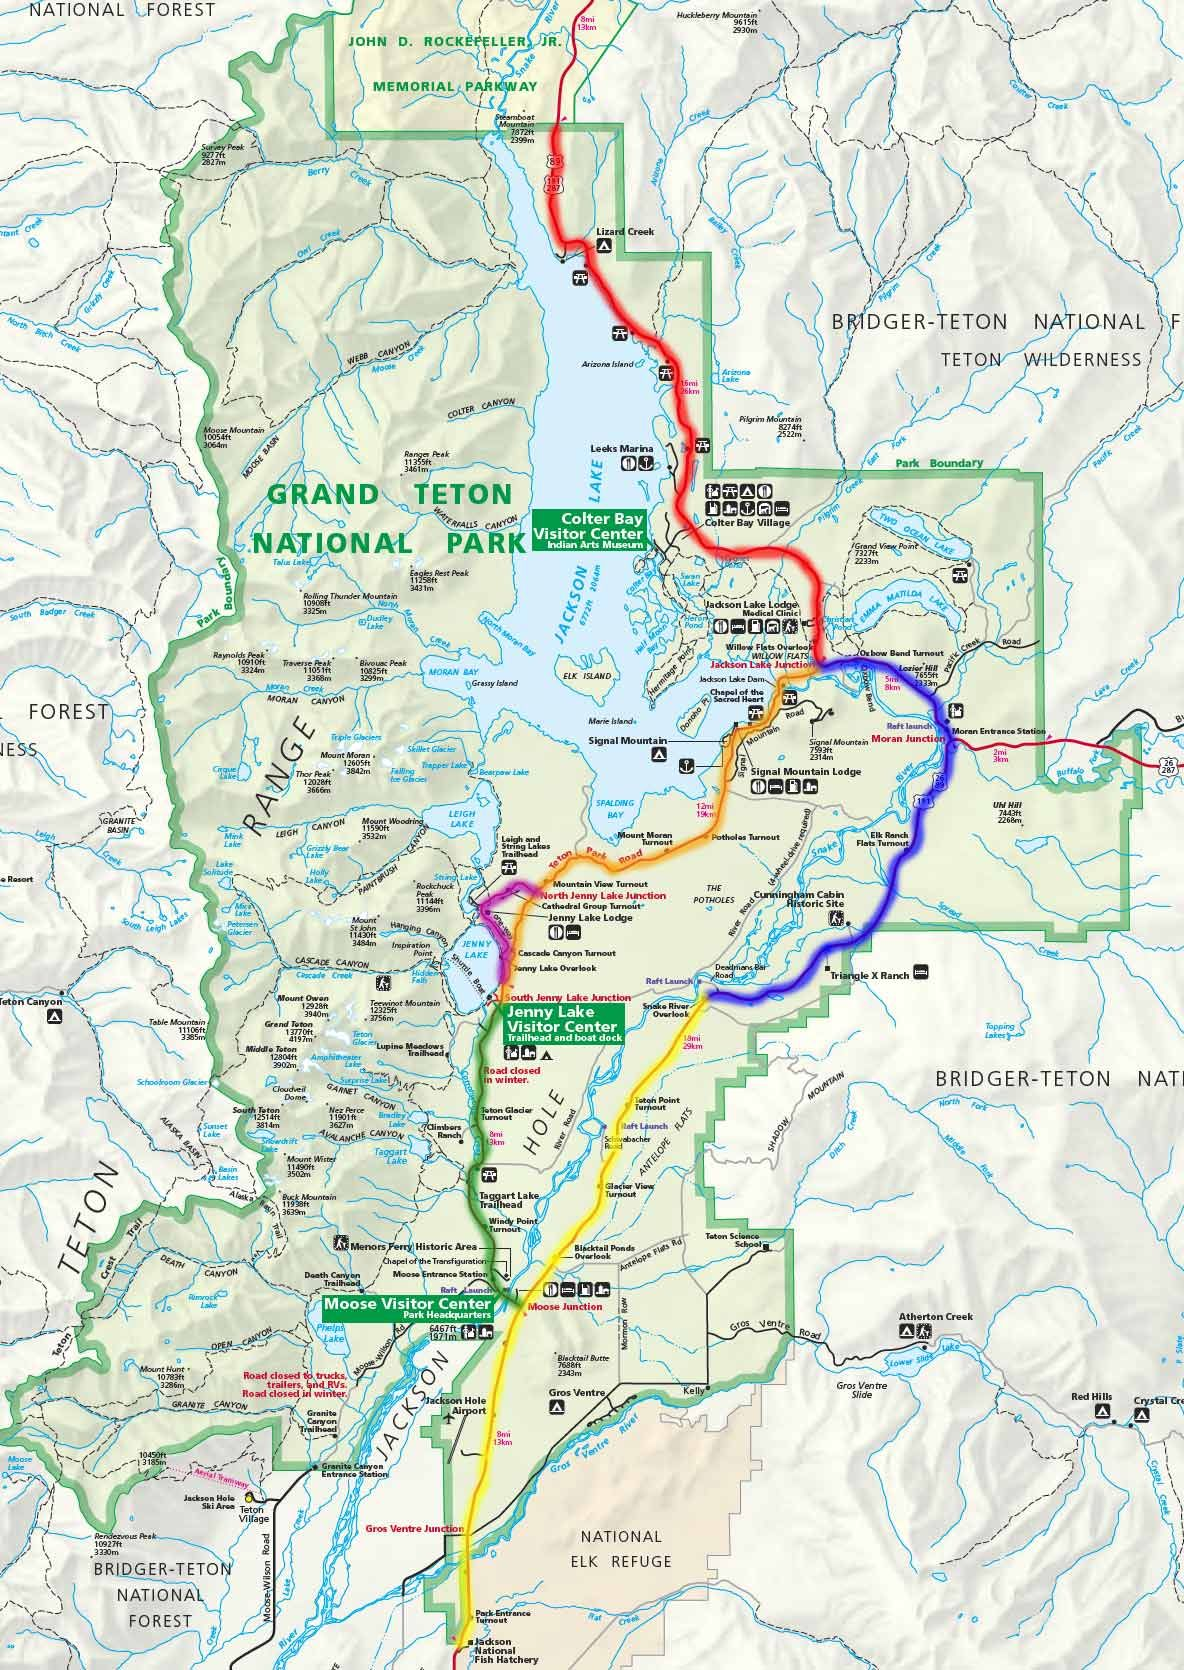 Grand Teton National Park Scenic Drives Locator Map Travel - Us highway 89 mile map